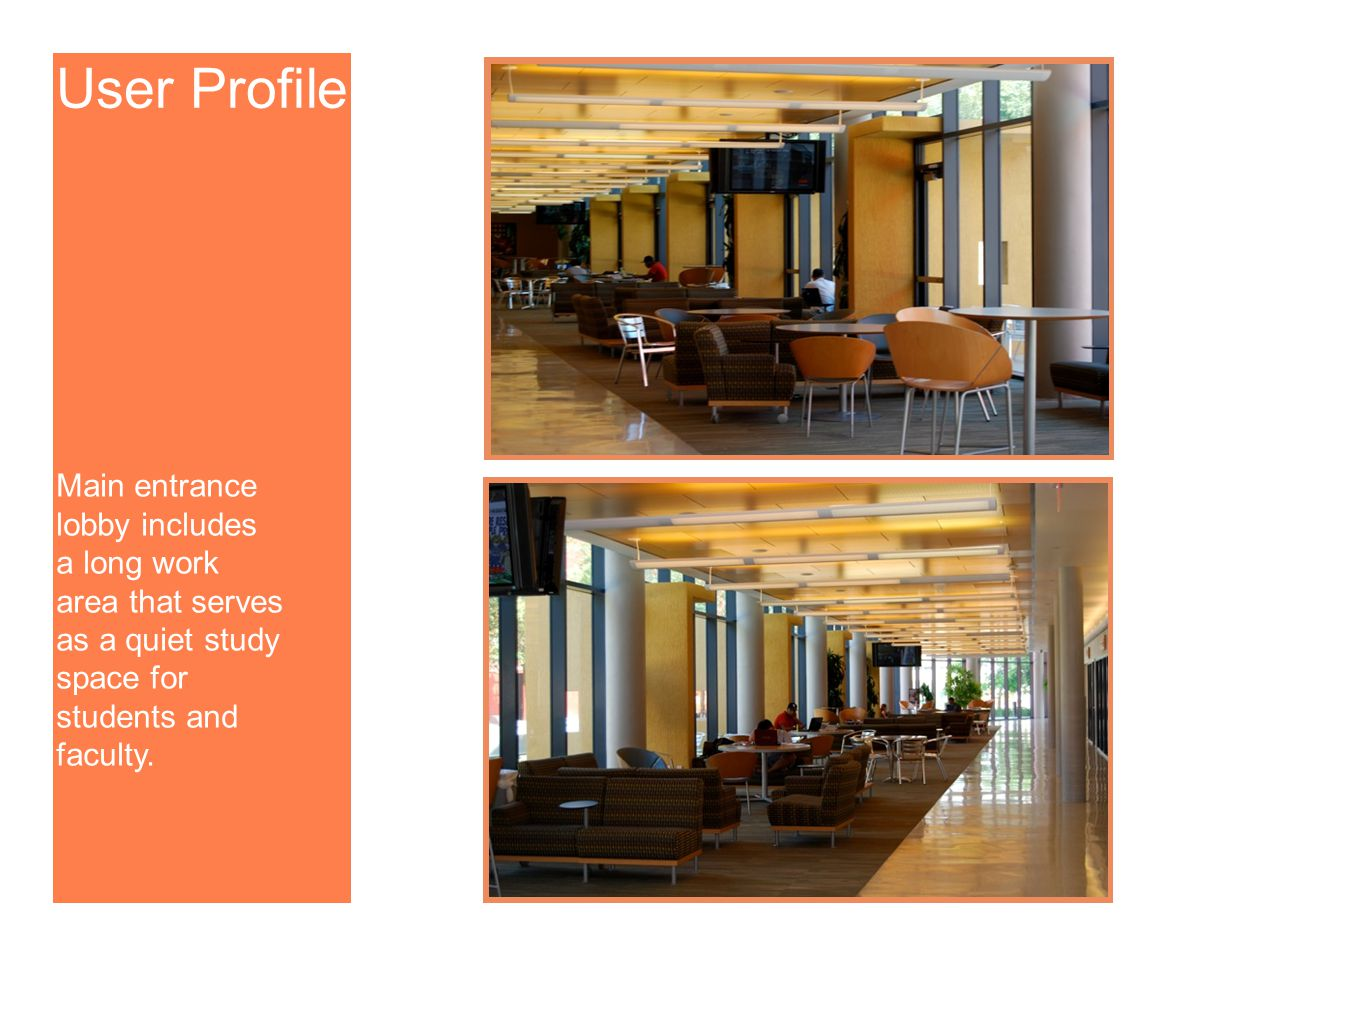 User Profile Main entrance lobby includes a long work area that serves as a quiet study space for students and faculty.